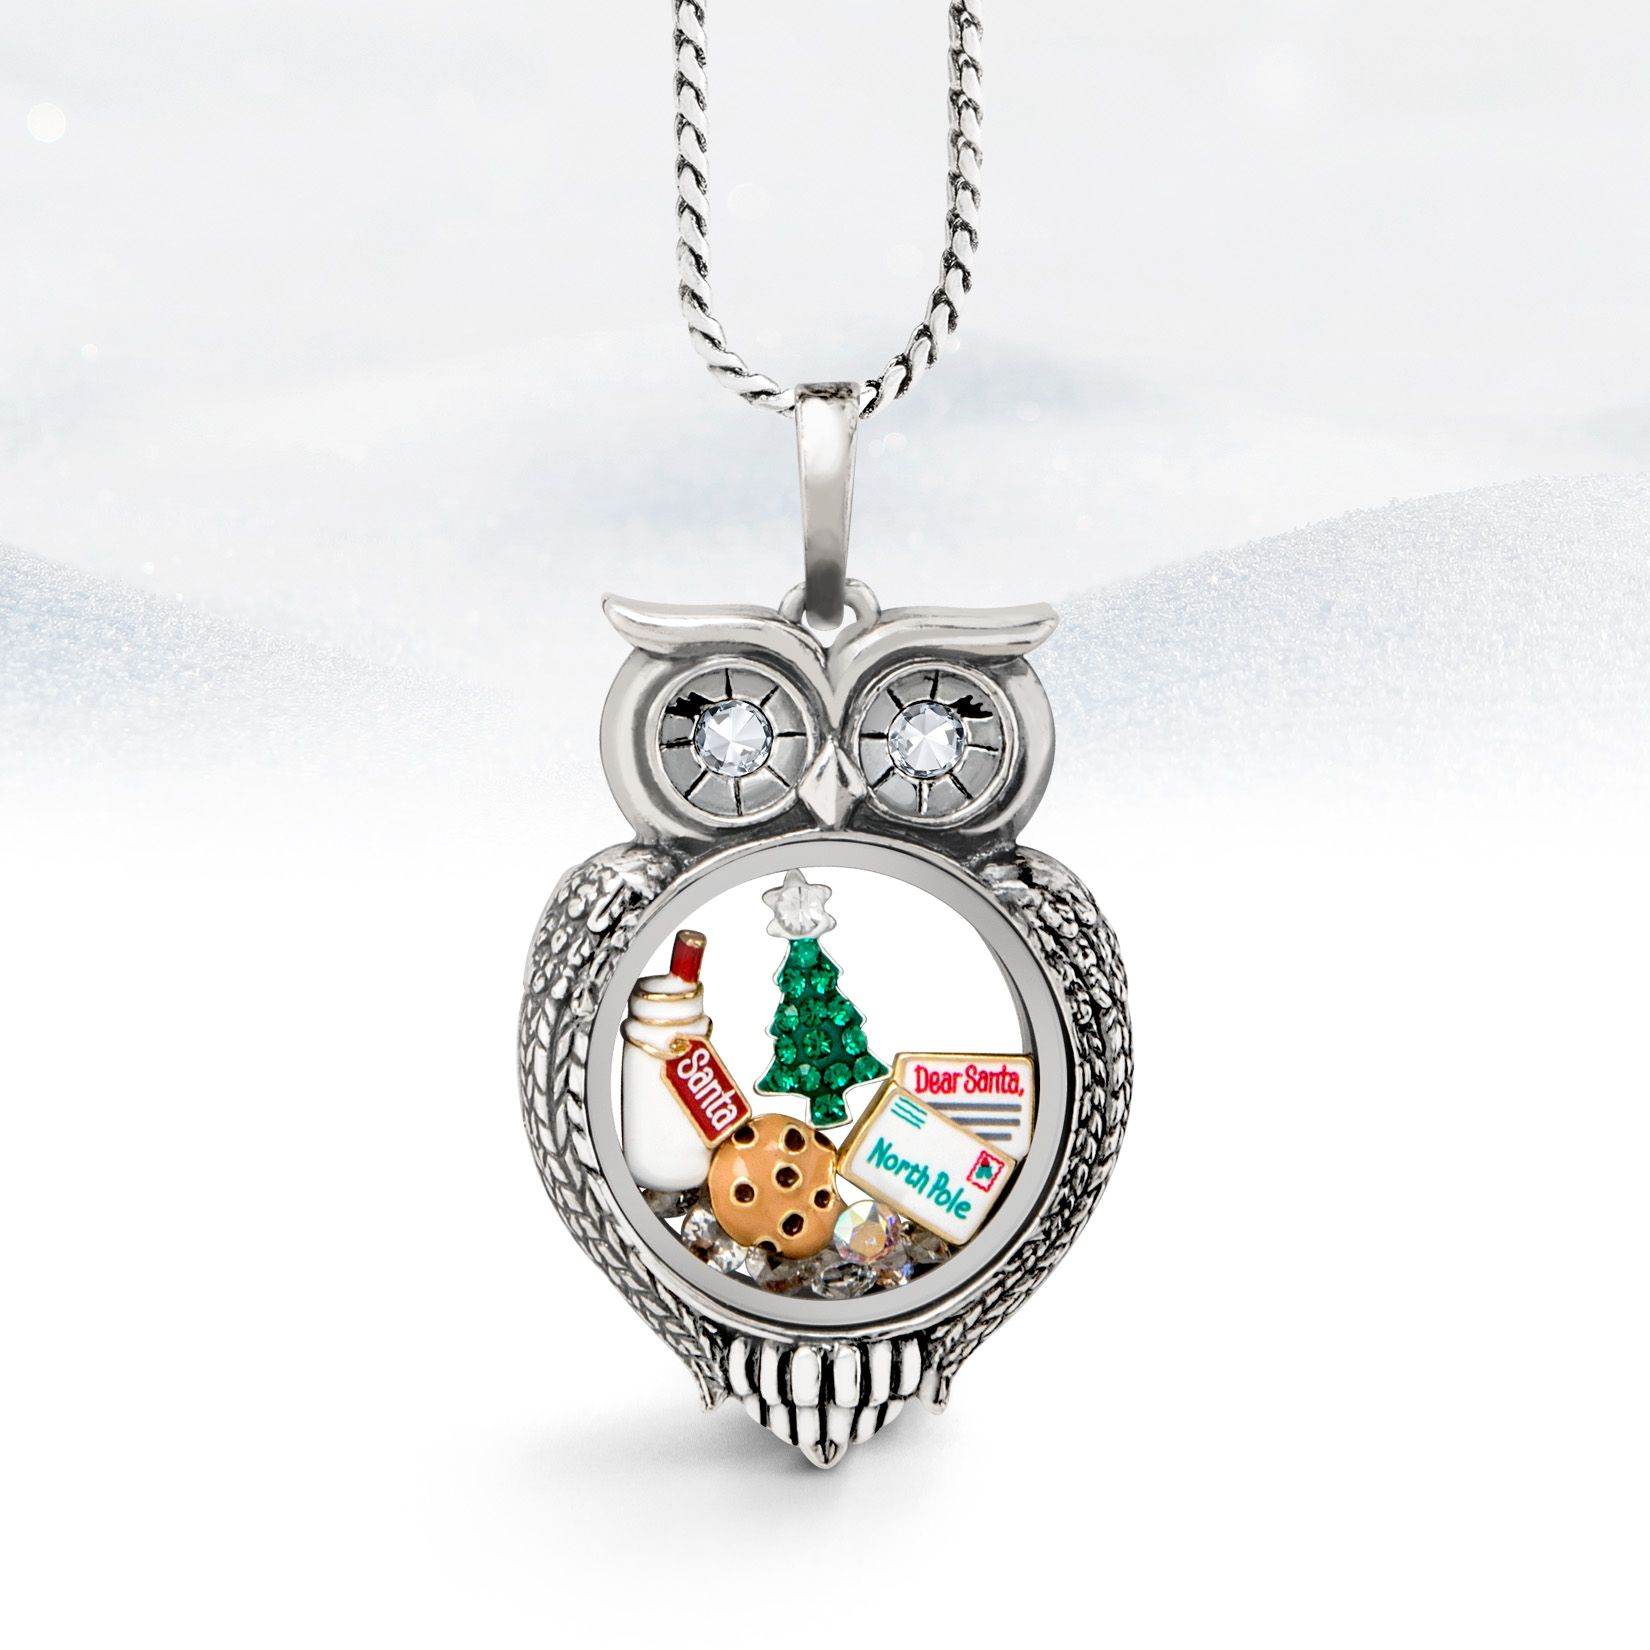 Origami owl winter and holiday collections olivia locket www origami owl winter and holiday collections olivia locket charminglocketsbyalineorigamiowl jeuxipadfo Image collections